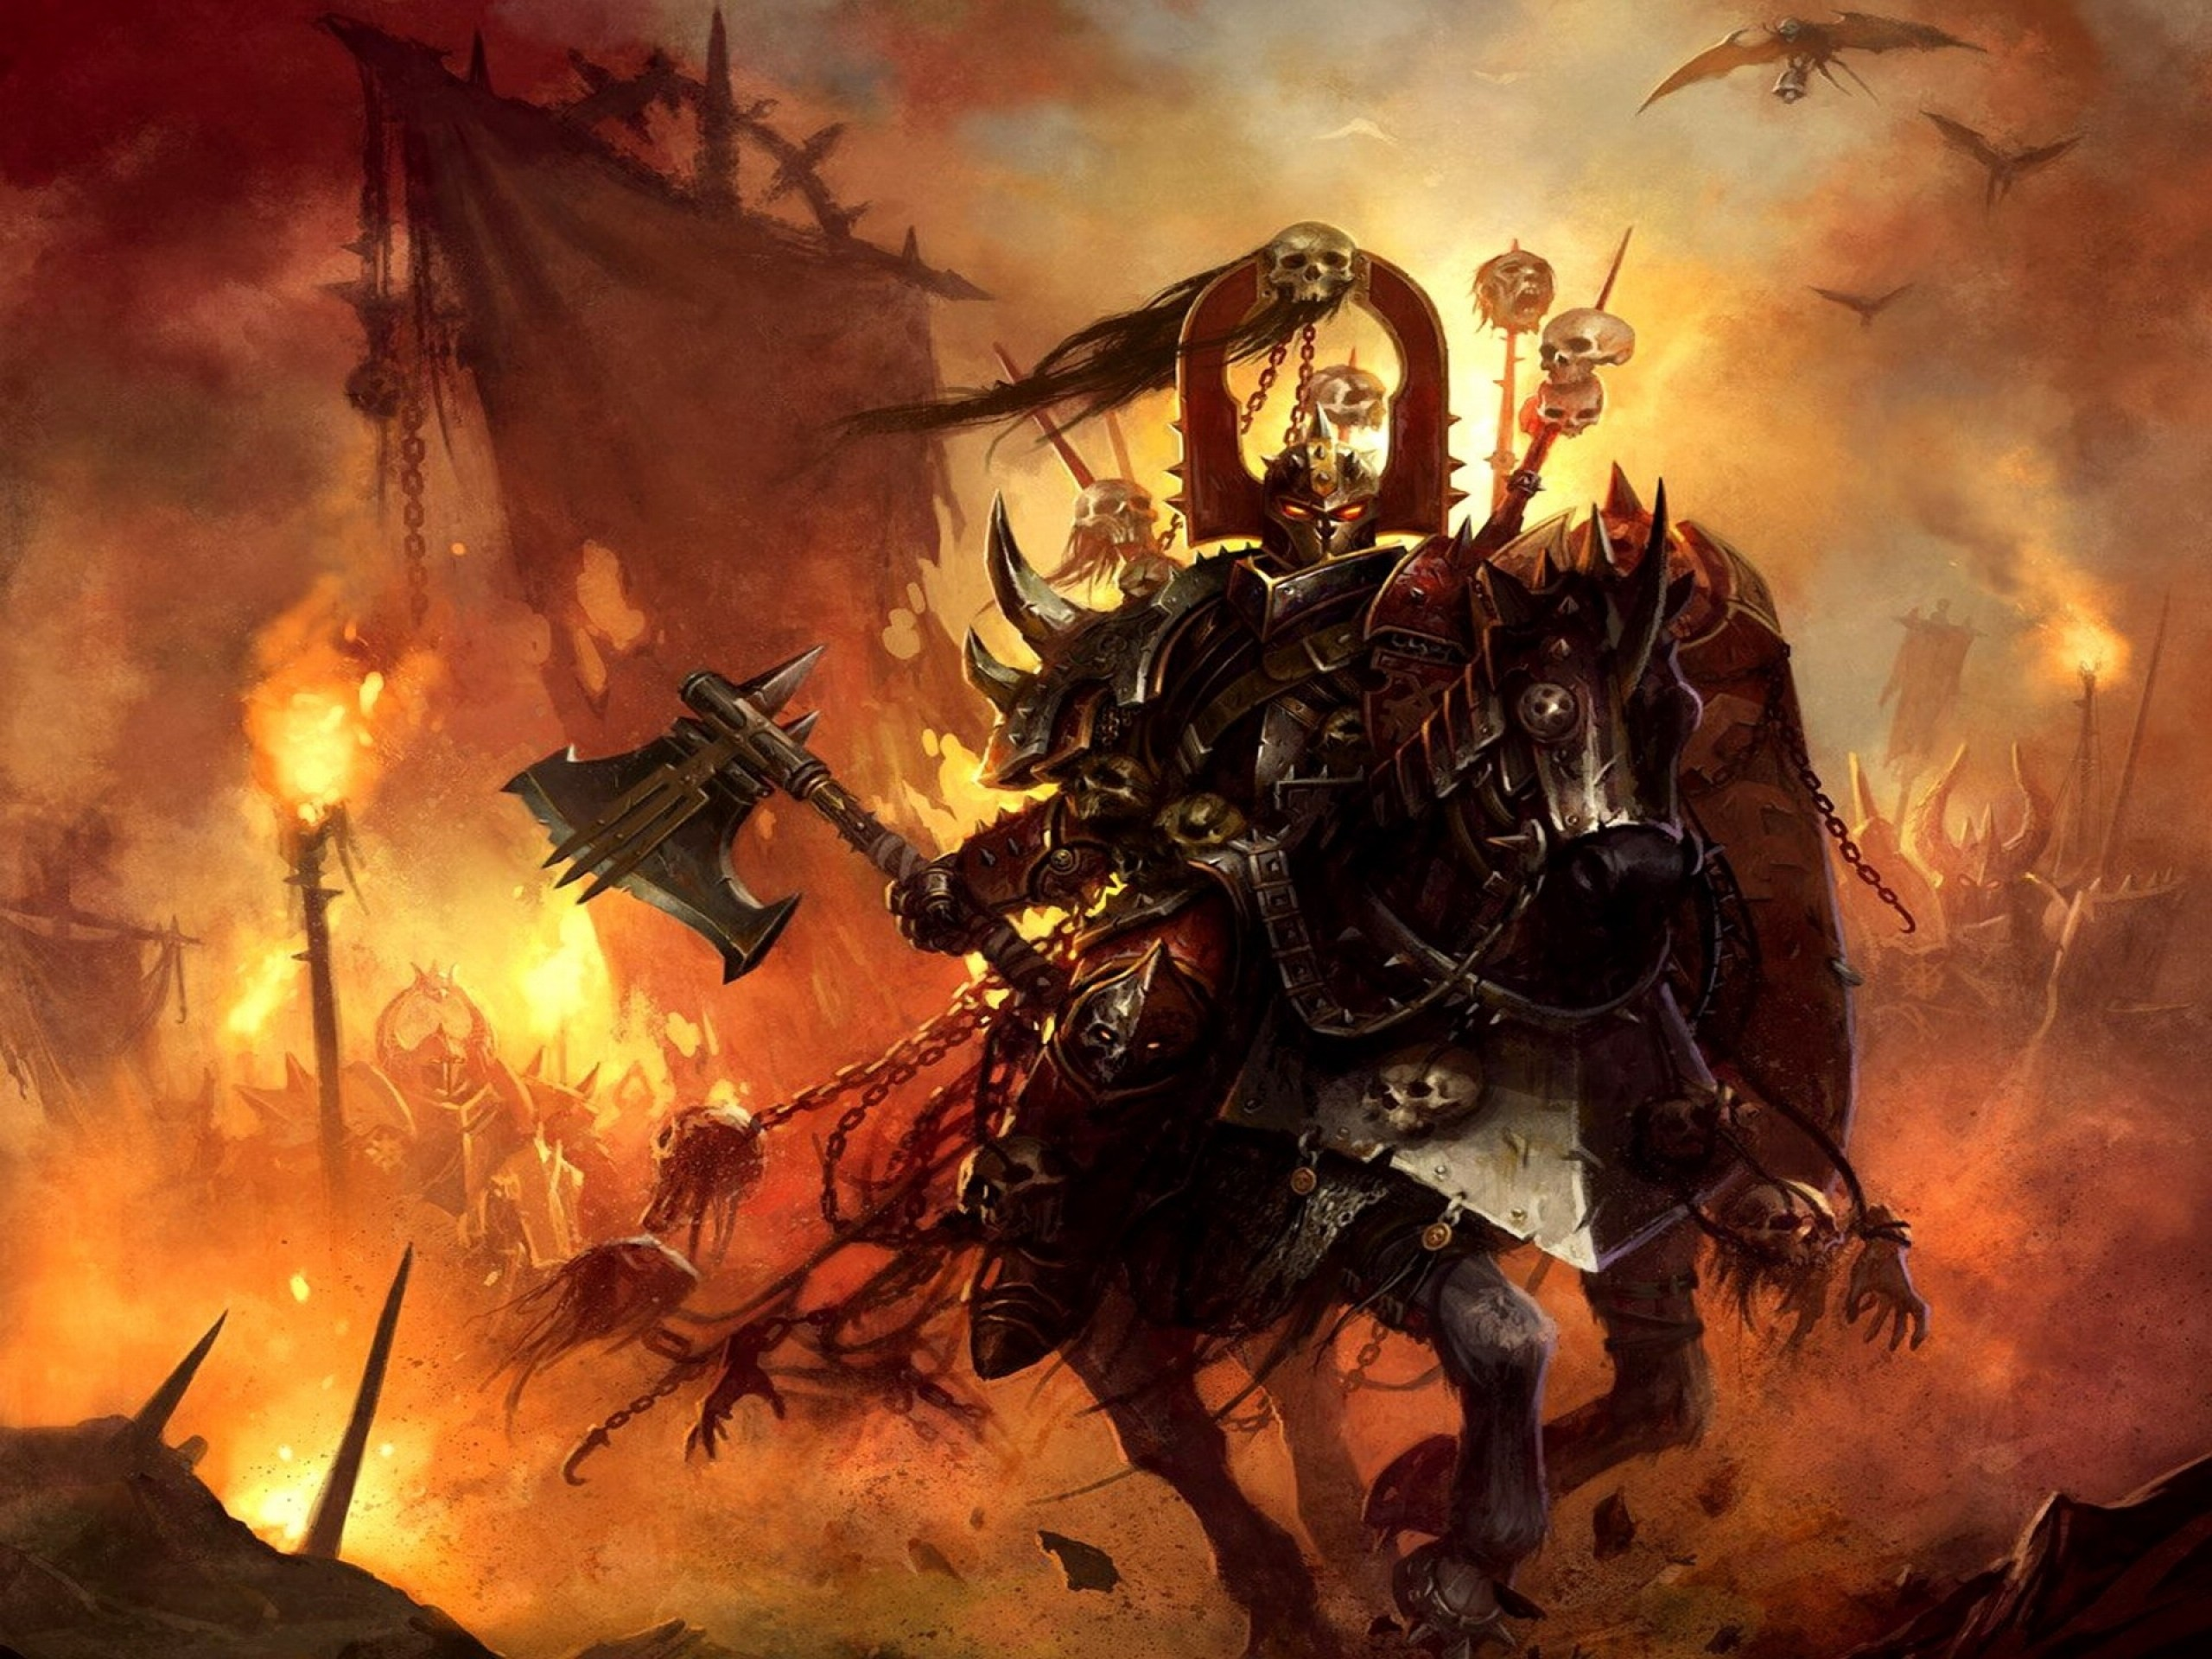 Download Wallpapers, Download knights warhammer .